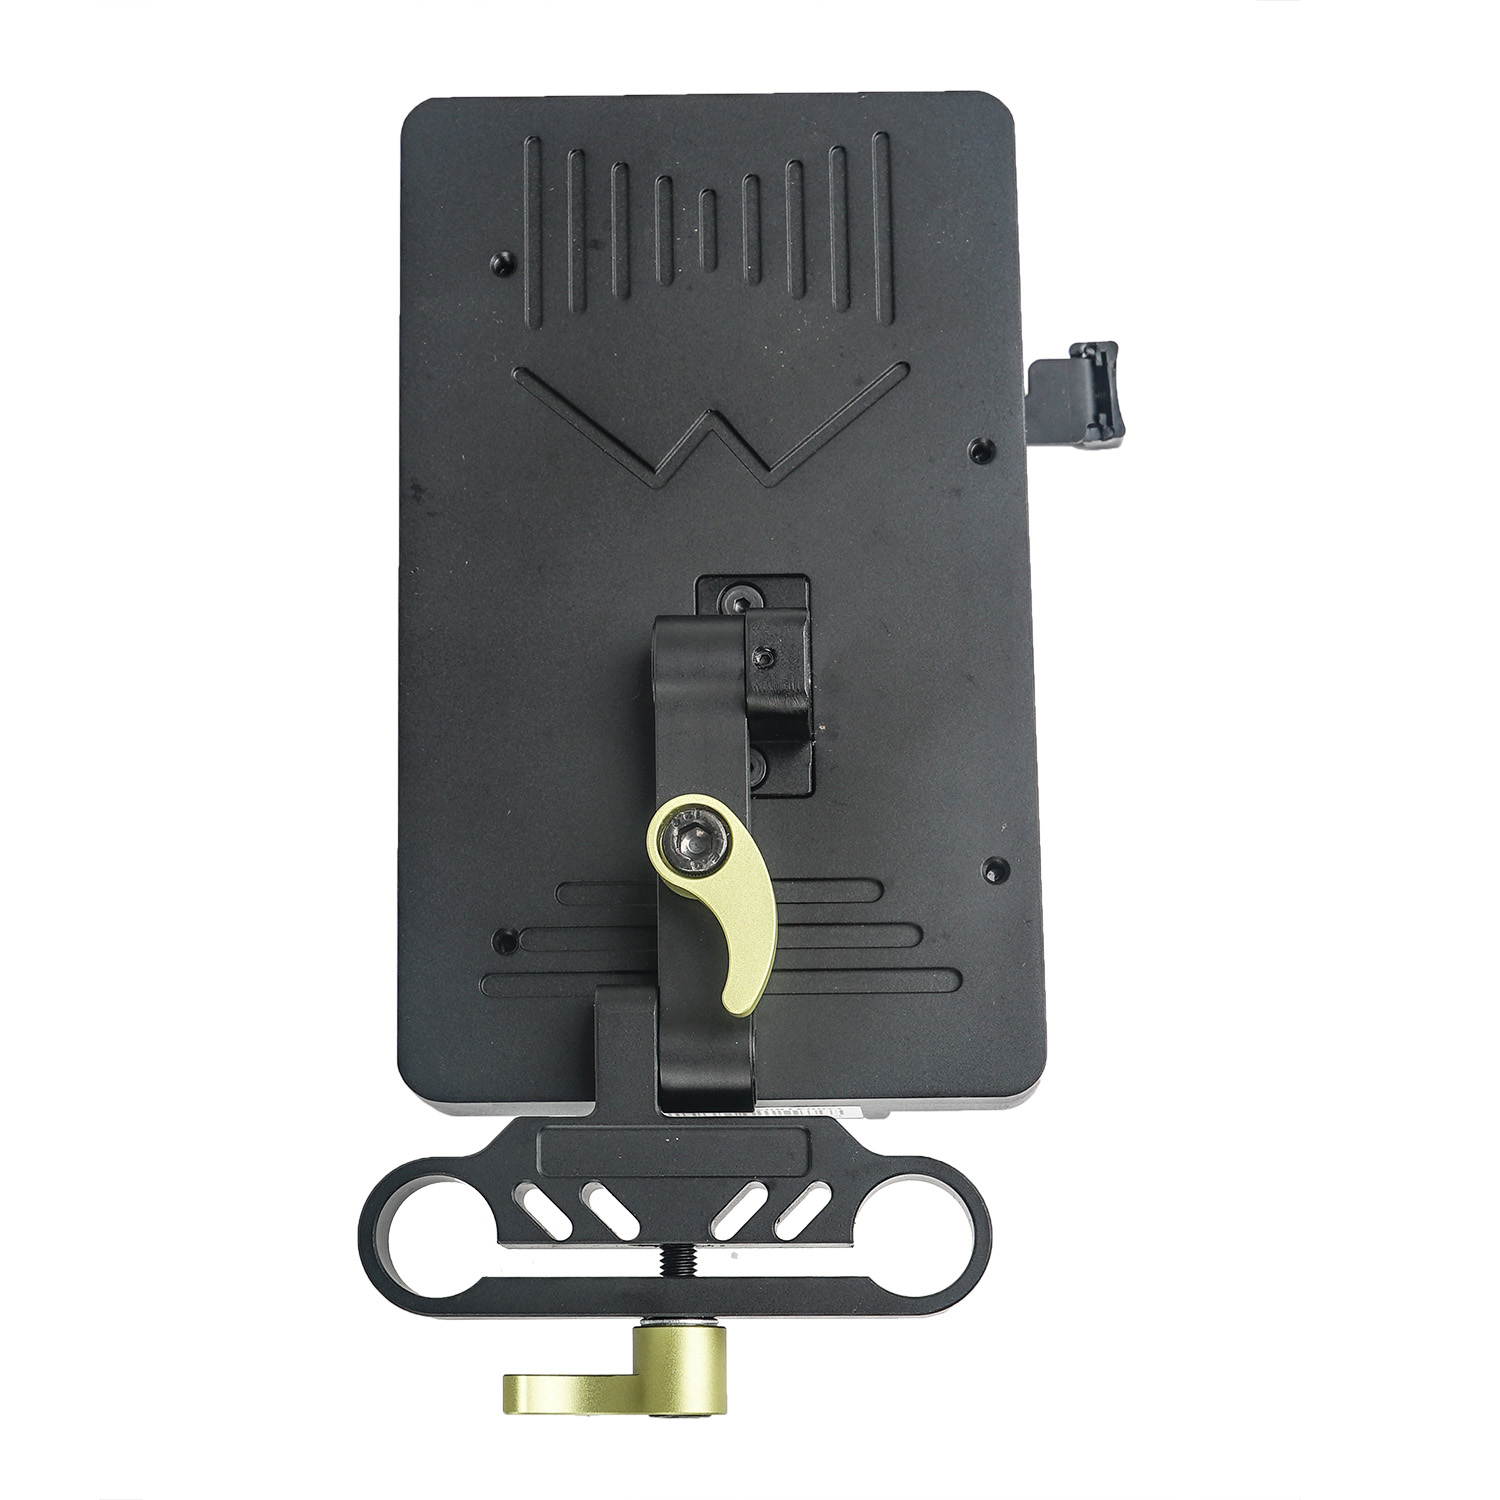 Image 2 - CAME TV V mount Battery Plate Include Connection Cable 5V 7.2V 12V-in Photo Studio Accessories from Consumer Electronics